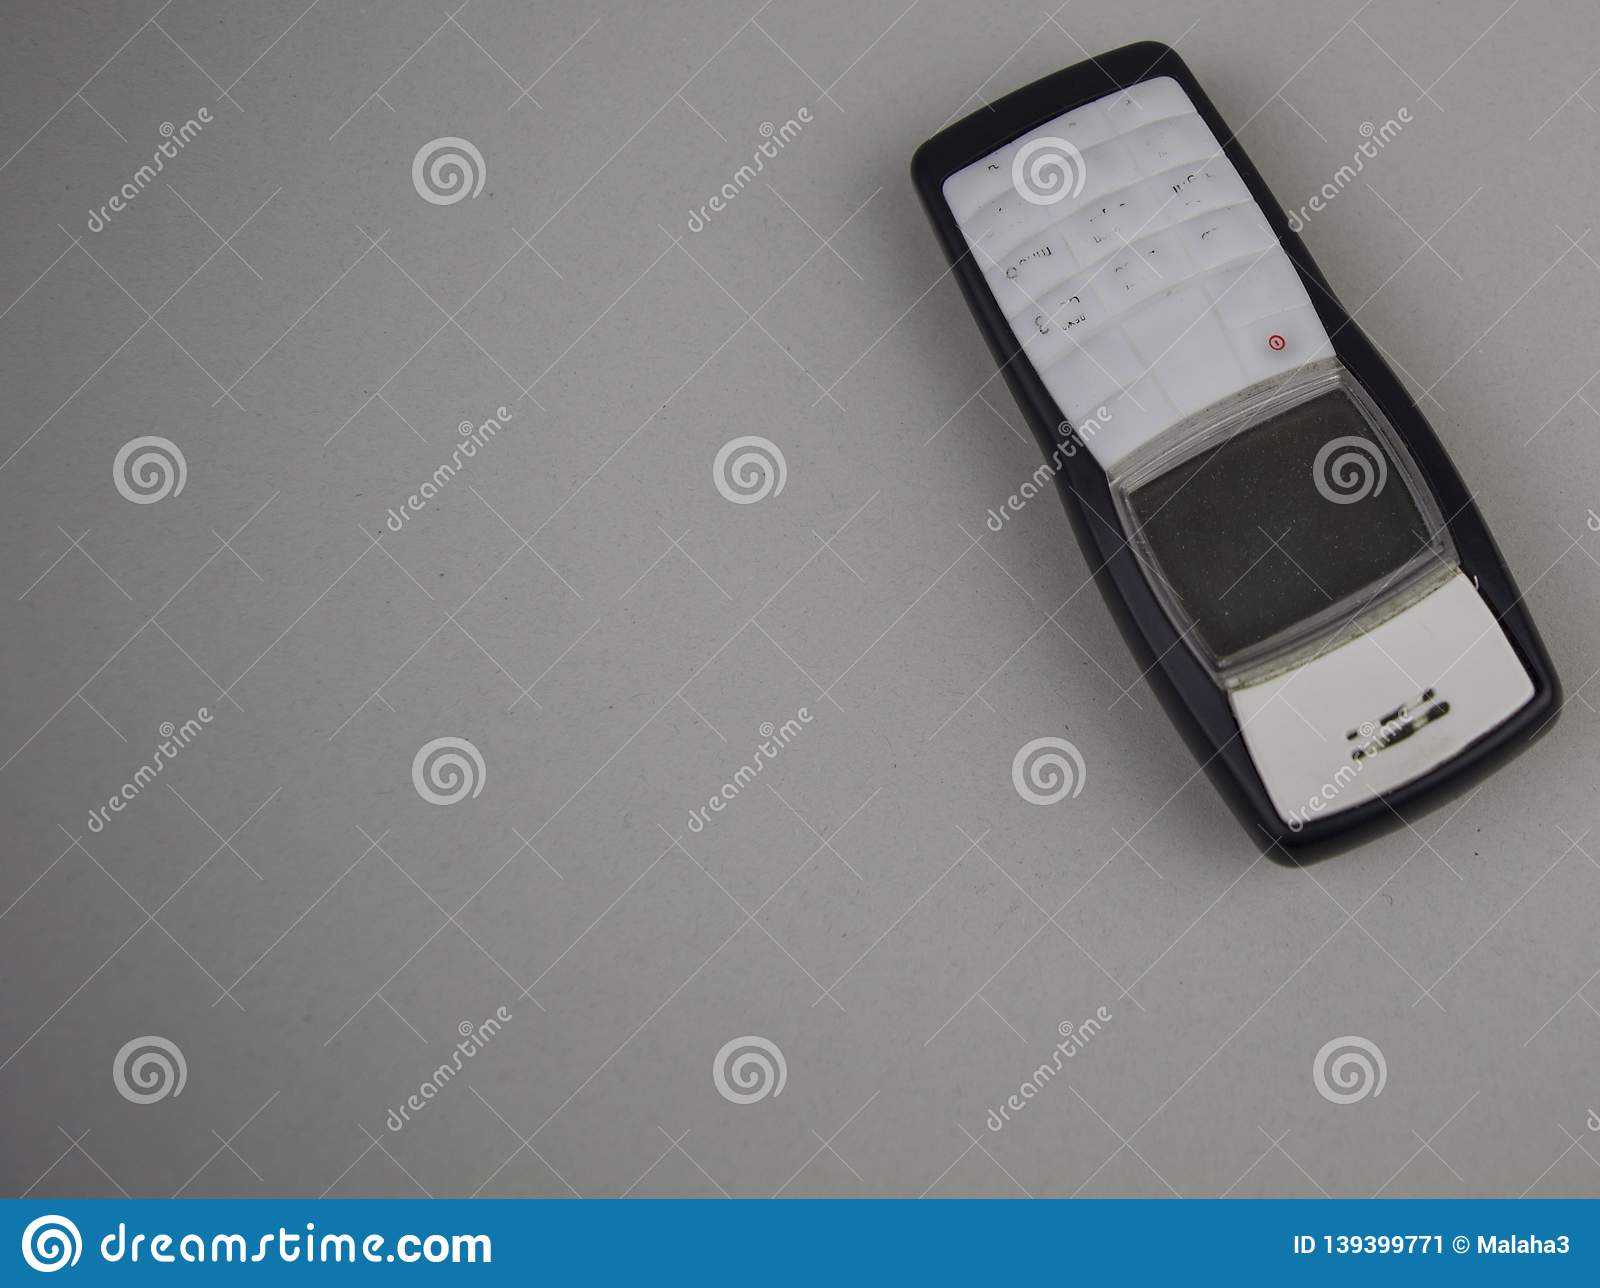 Push-button mobile phone, old on a gray background with free space to fill